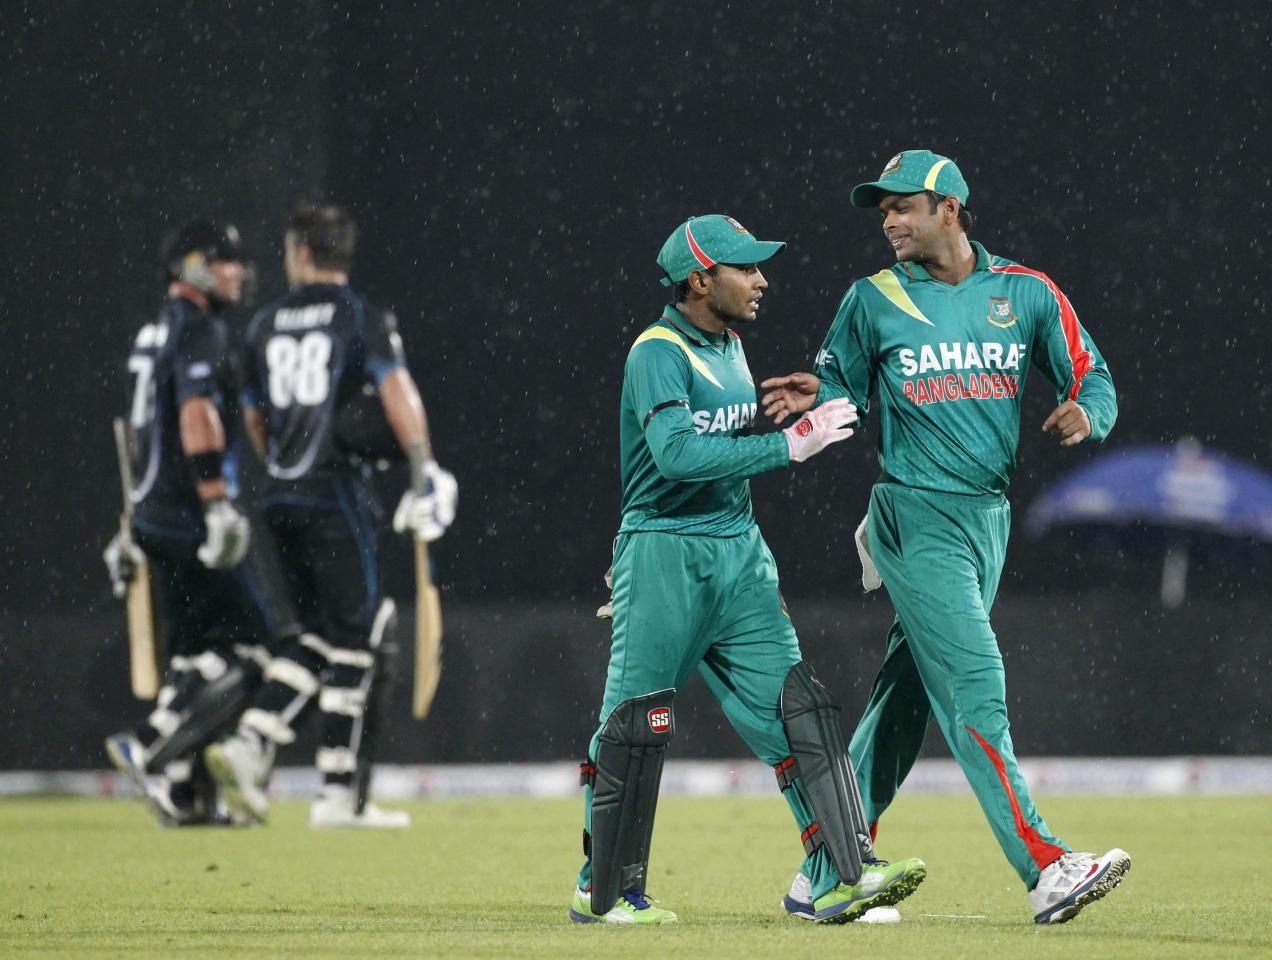 Bangladesh's captain Mushfiqur Rahim and Abdur Razzak (R) leave the field with New Zealand's Grant Elliott and Corey Anderson after rain inturupted the first one-day international (ODI) cricket match between New Zealand and Bangladesh in Dhaka October 29, 2013. REUTERS/Andrew Biraj (BANGLADESH - Tags: SPORT CRICKET ENVIRONMENT)